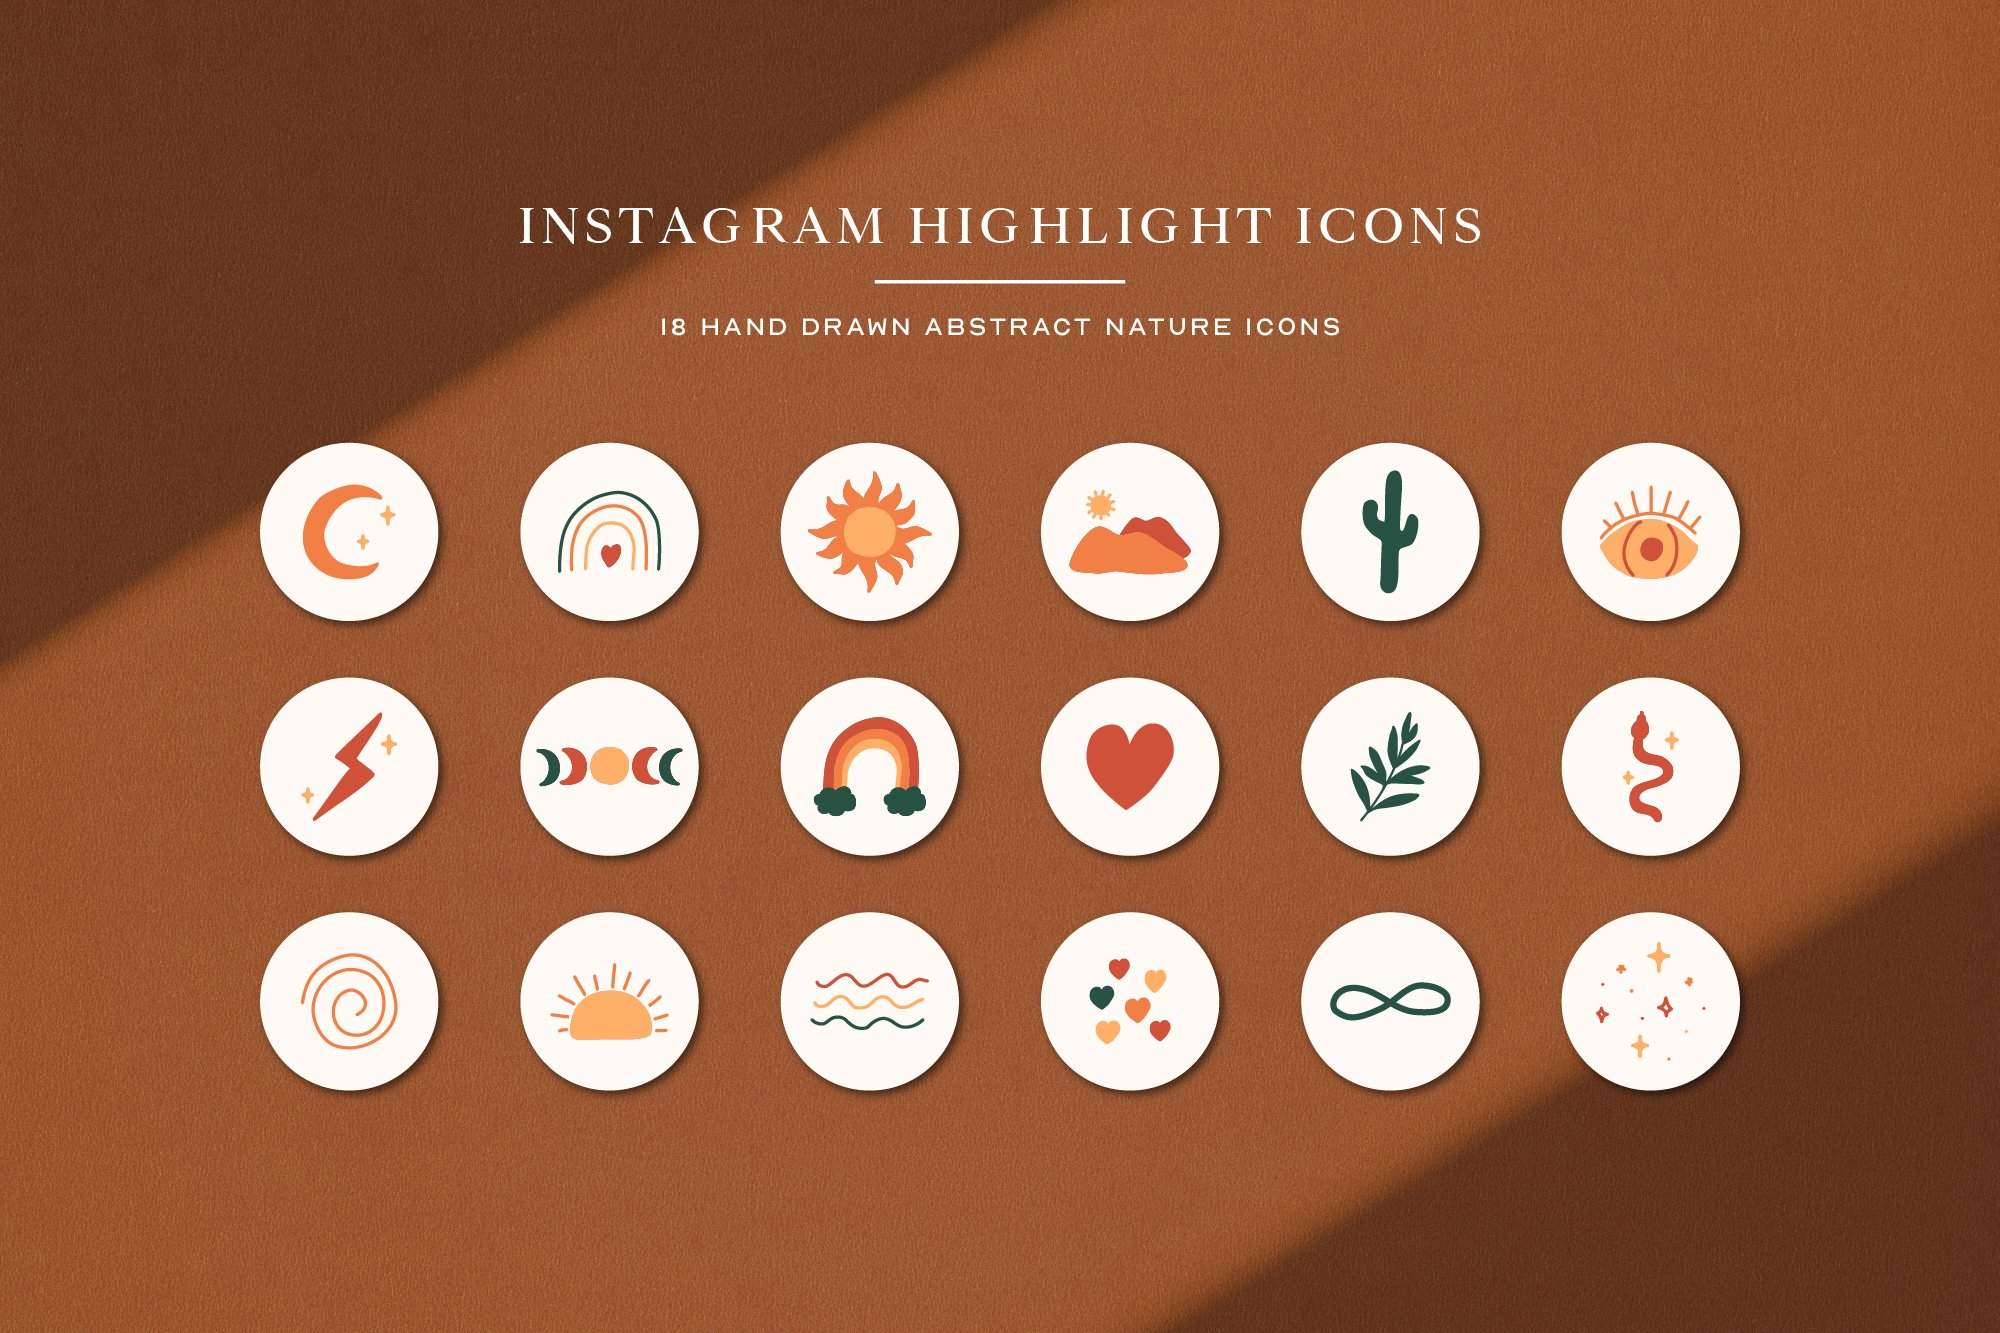 Instagram Abstract Highlights Icons   Instagram Story Covers example image 2